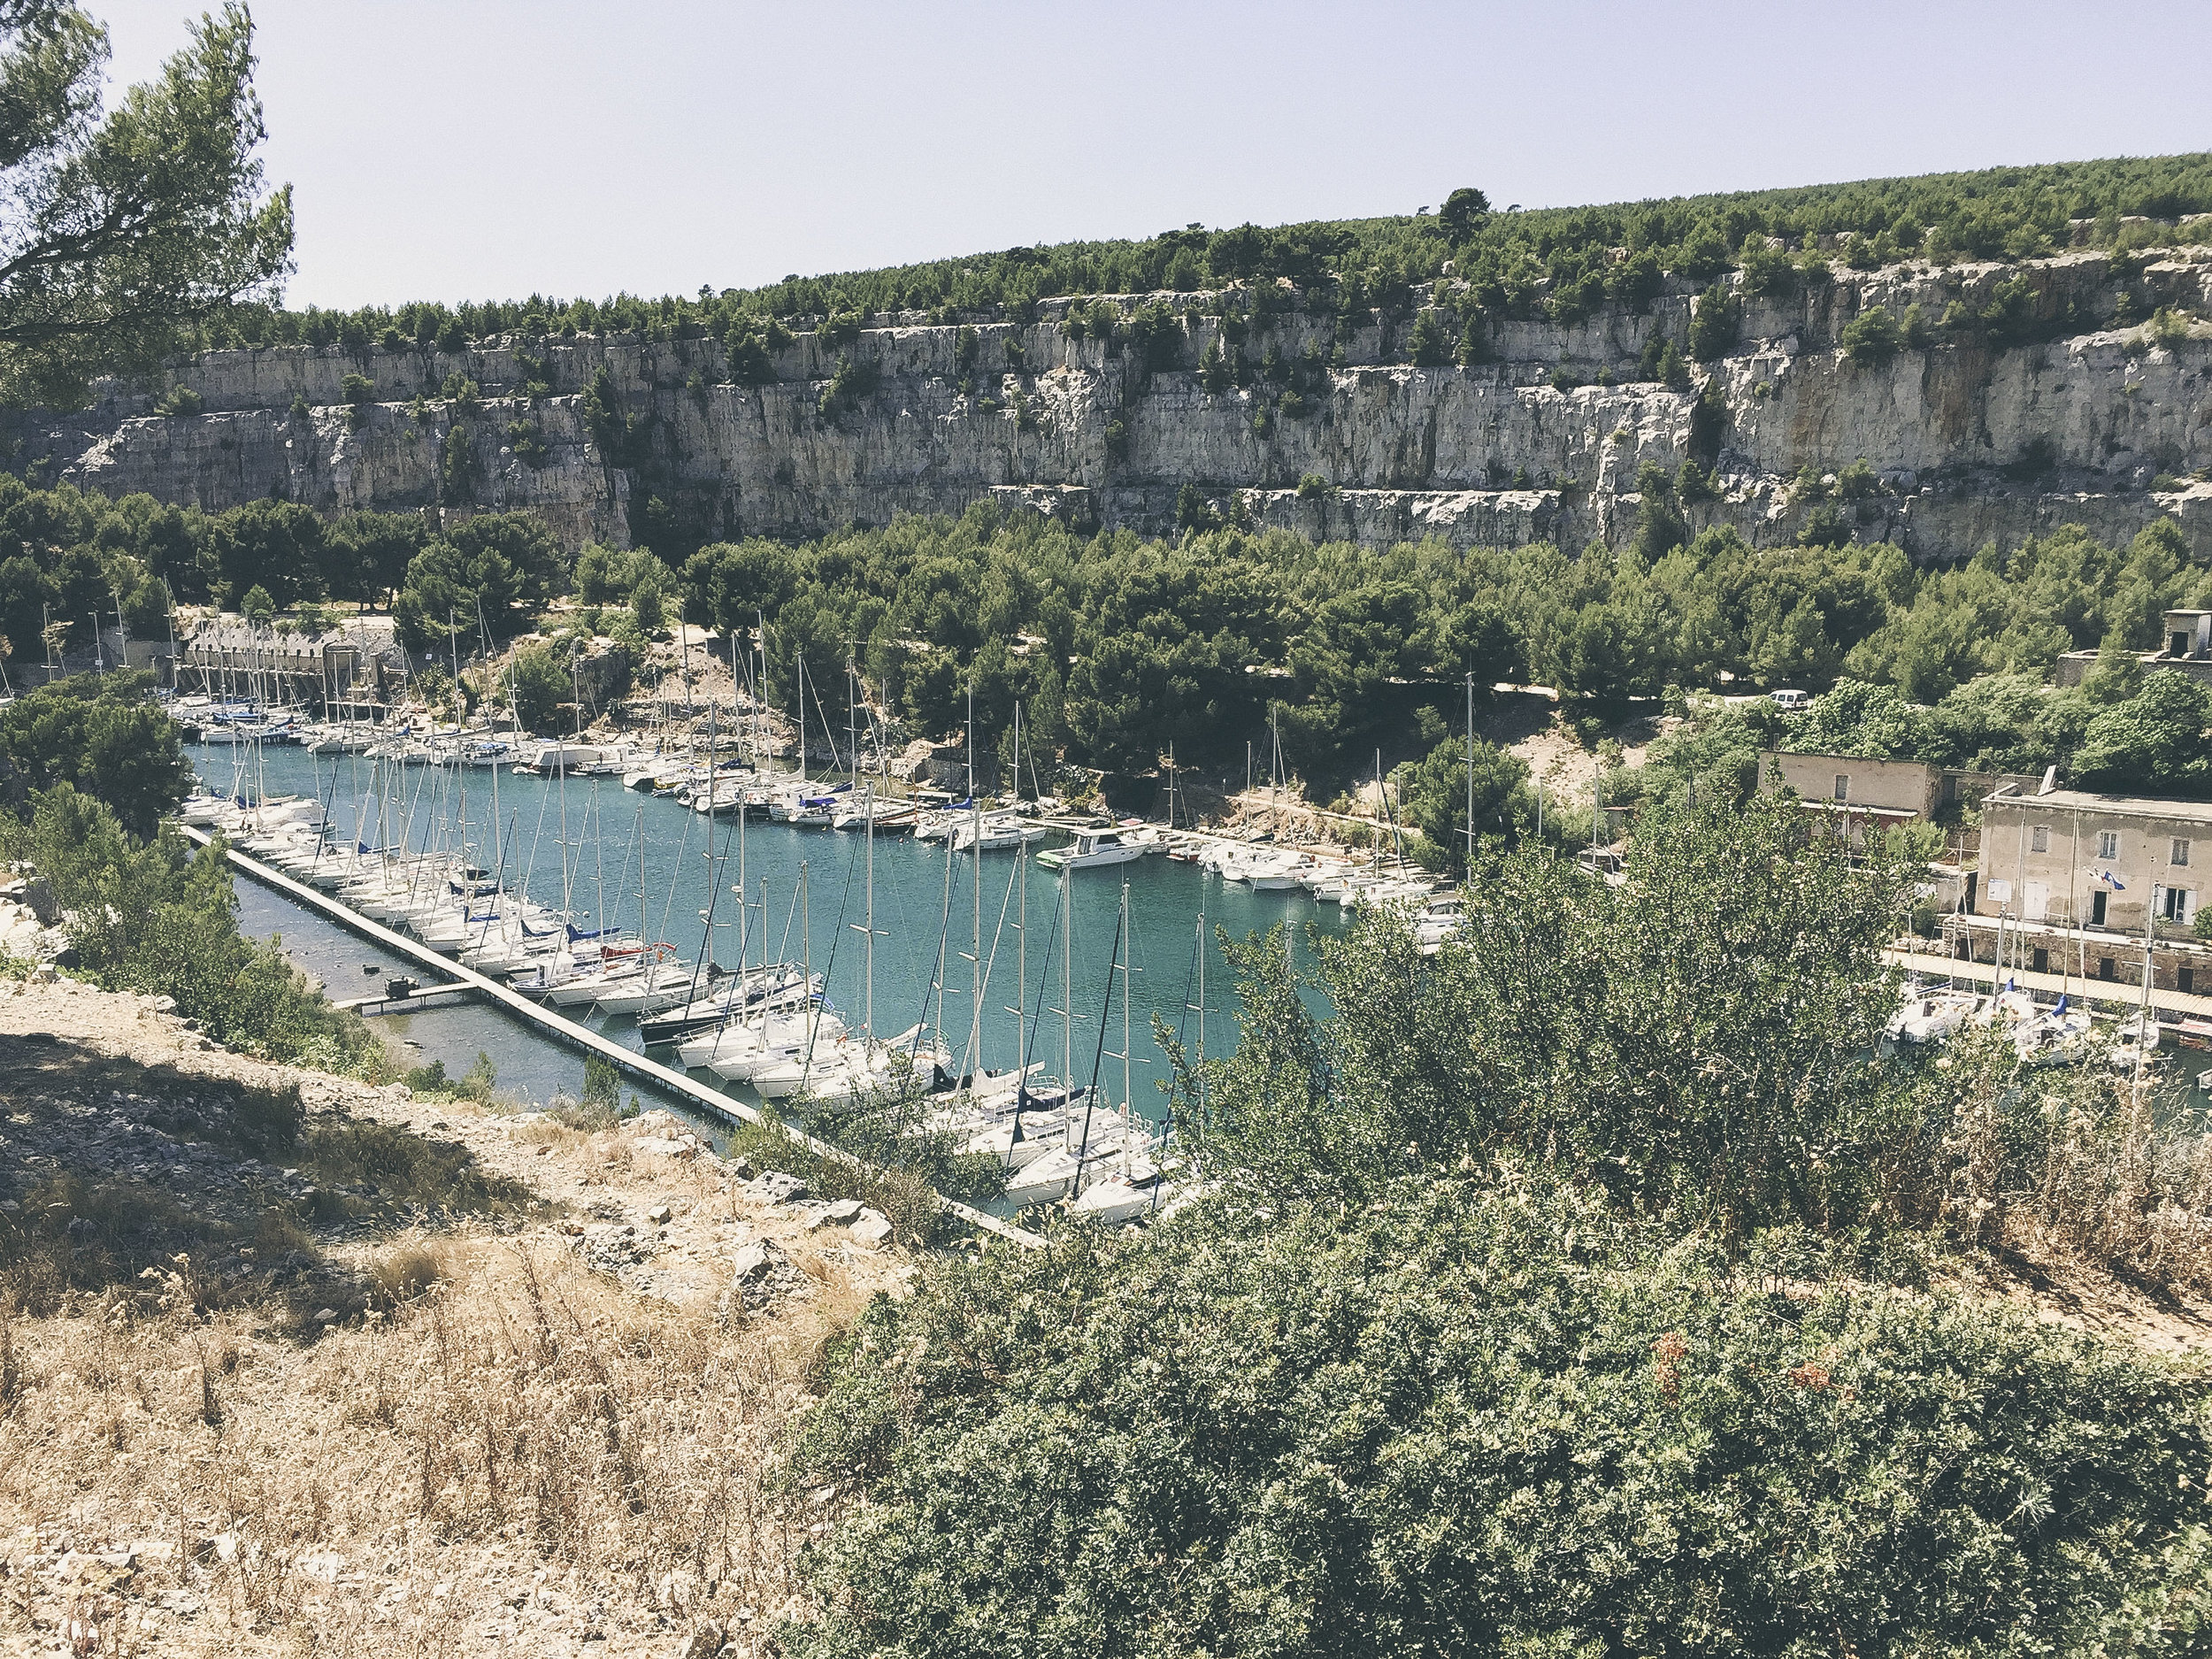 dèrrive travel - a day in cassis, france. where to go and what to do. www.derrive.com